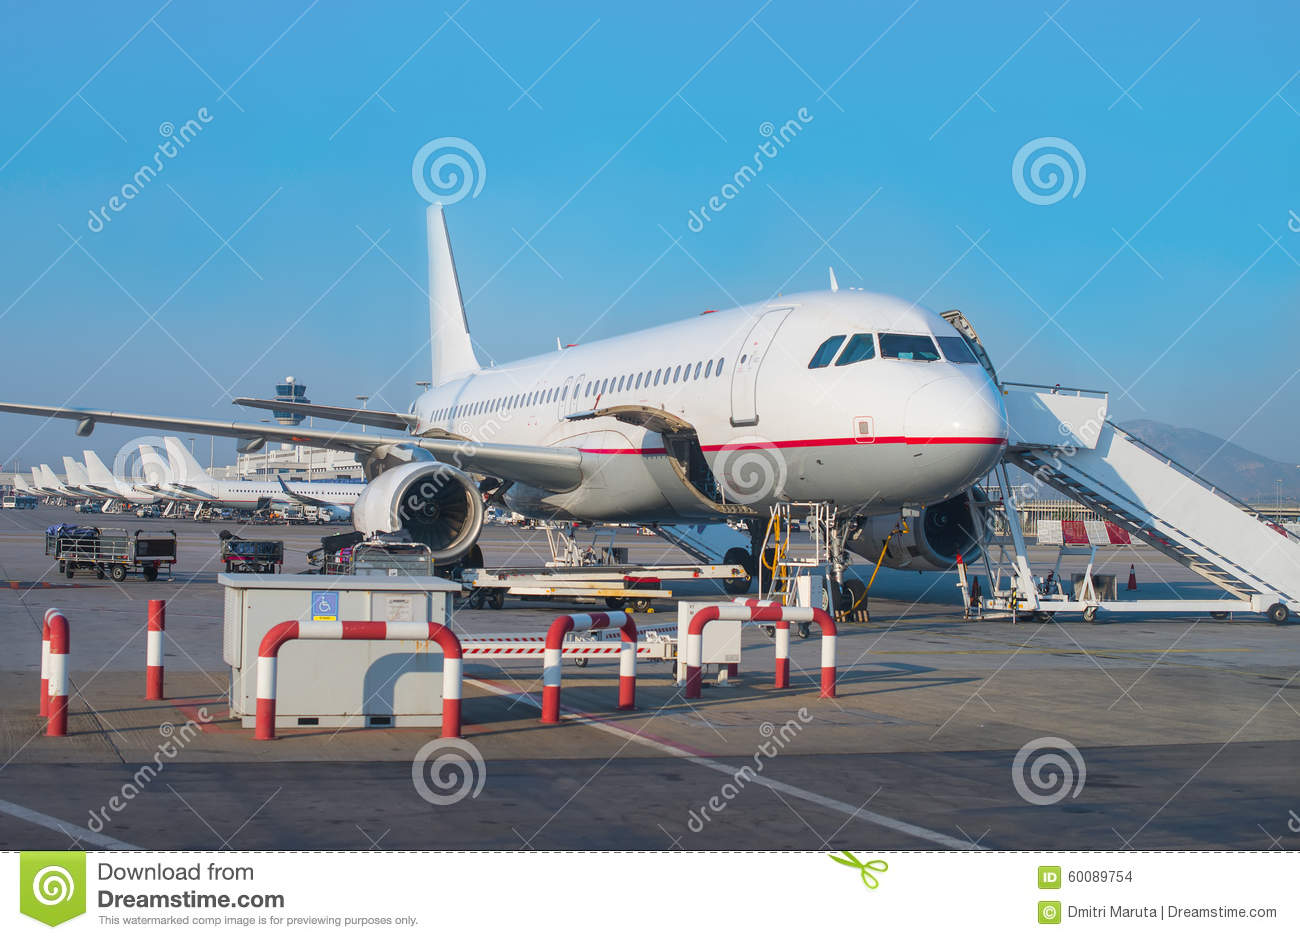 Download Passenger Plane In The Airport. Stock Photo - Image of airline, airfield: 60089754